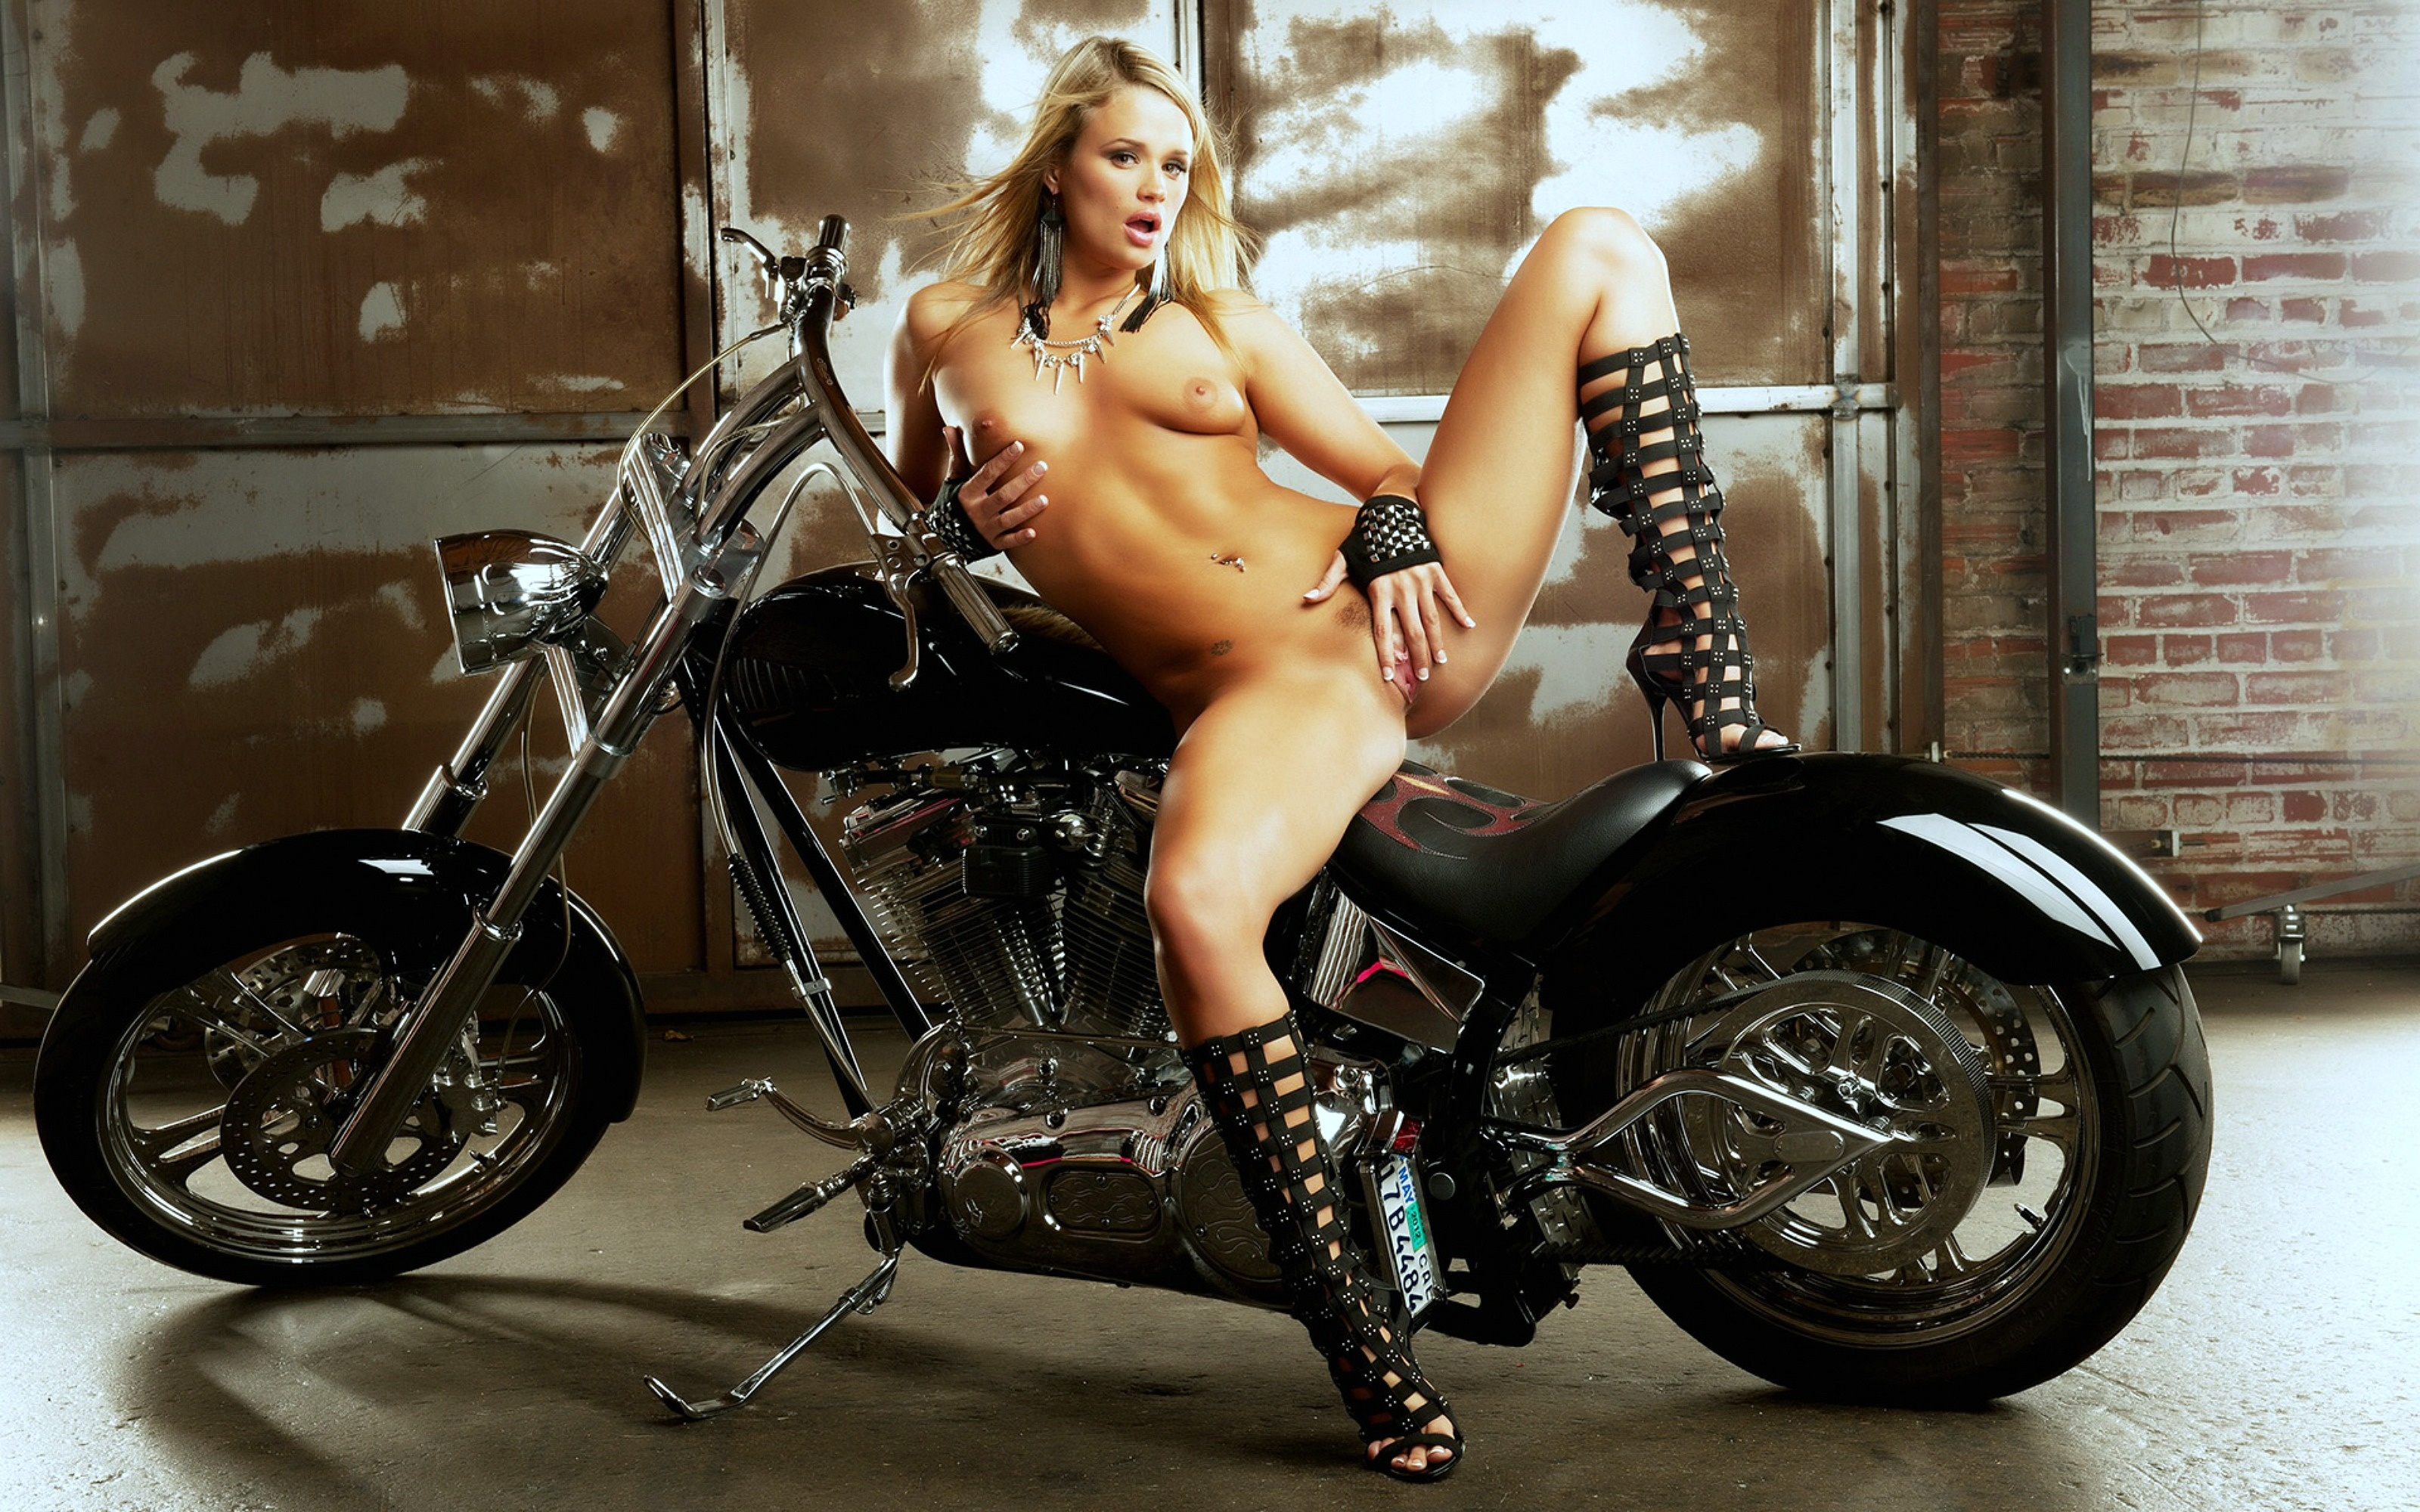 the hot girl the sex scene xxx sexy bike